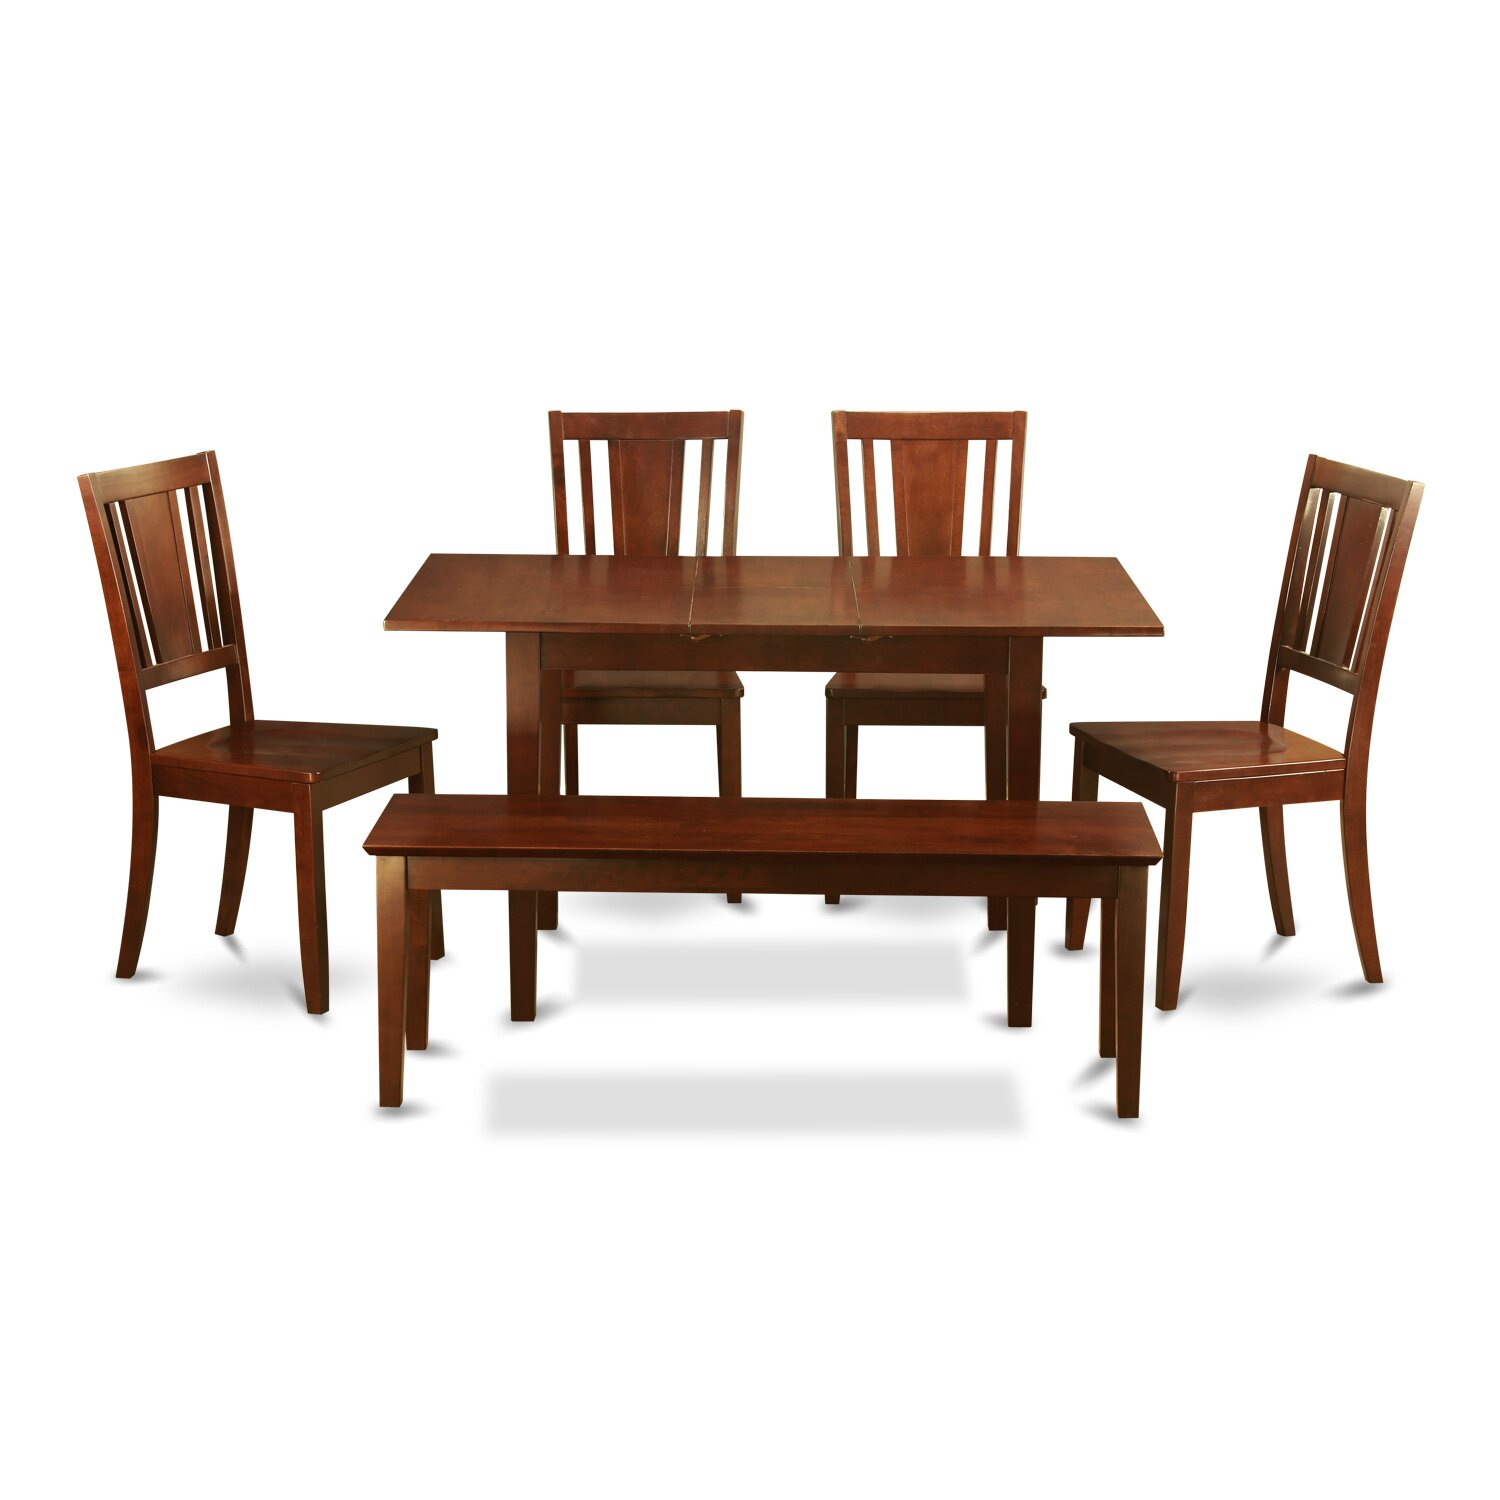 East west norfolk 6 piece dining set reviews wayfair for Furniture 2 day shipping